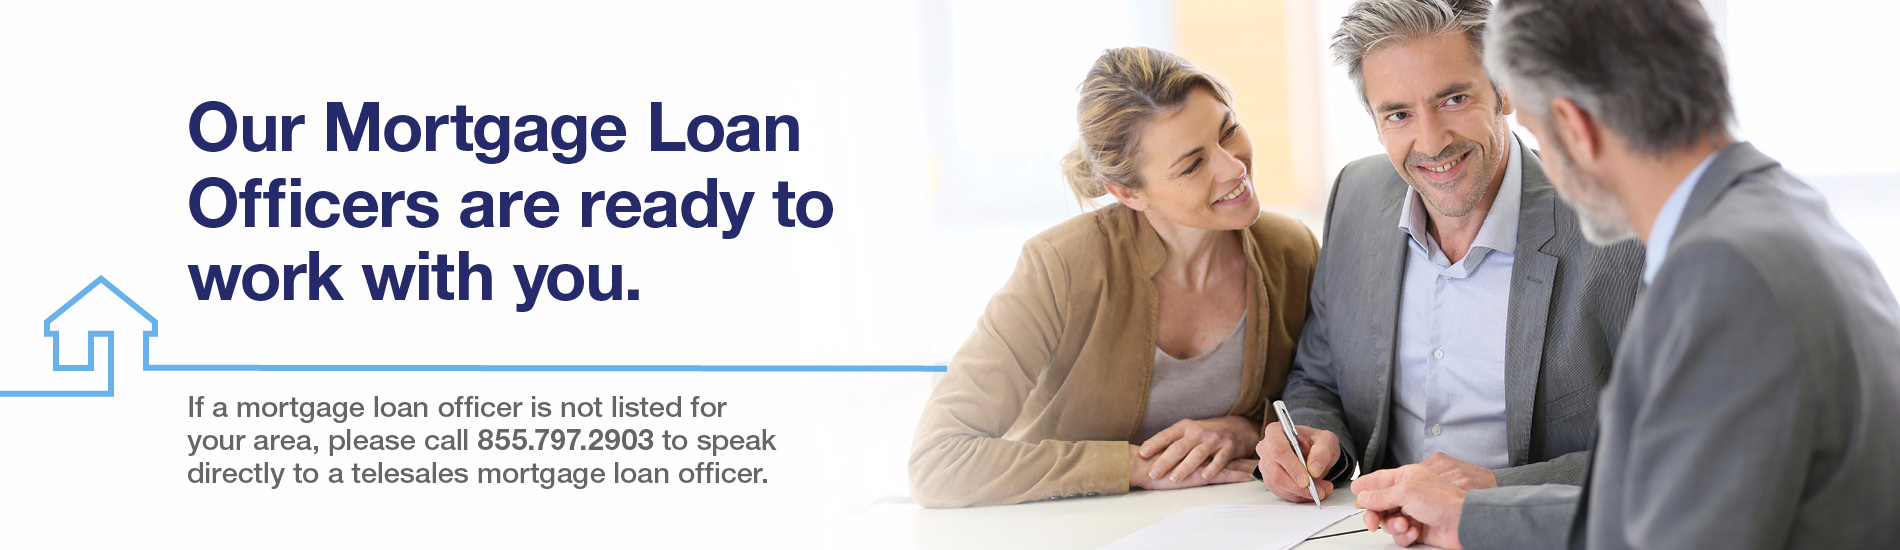 Find a U.S. bank mortgage loan officer in your area.